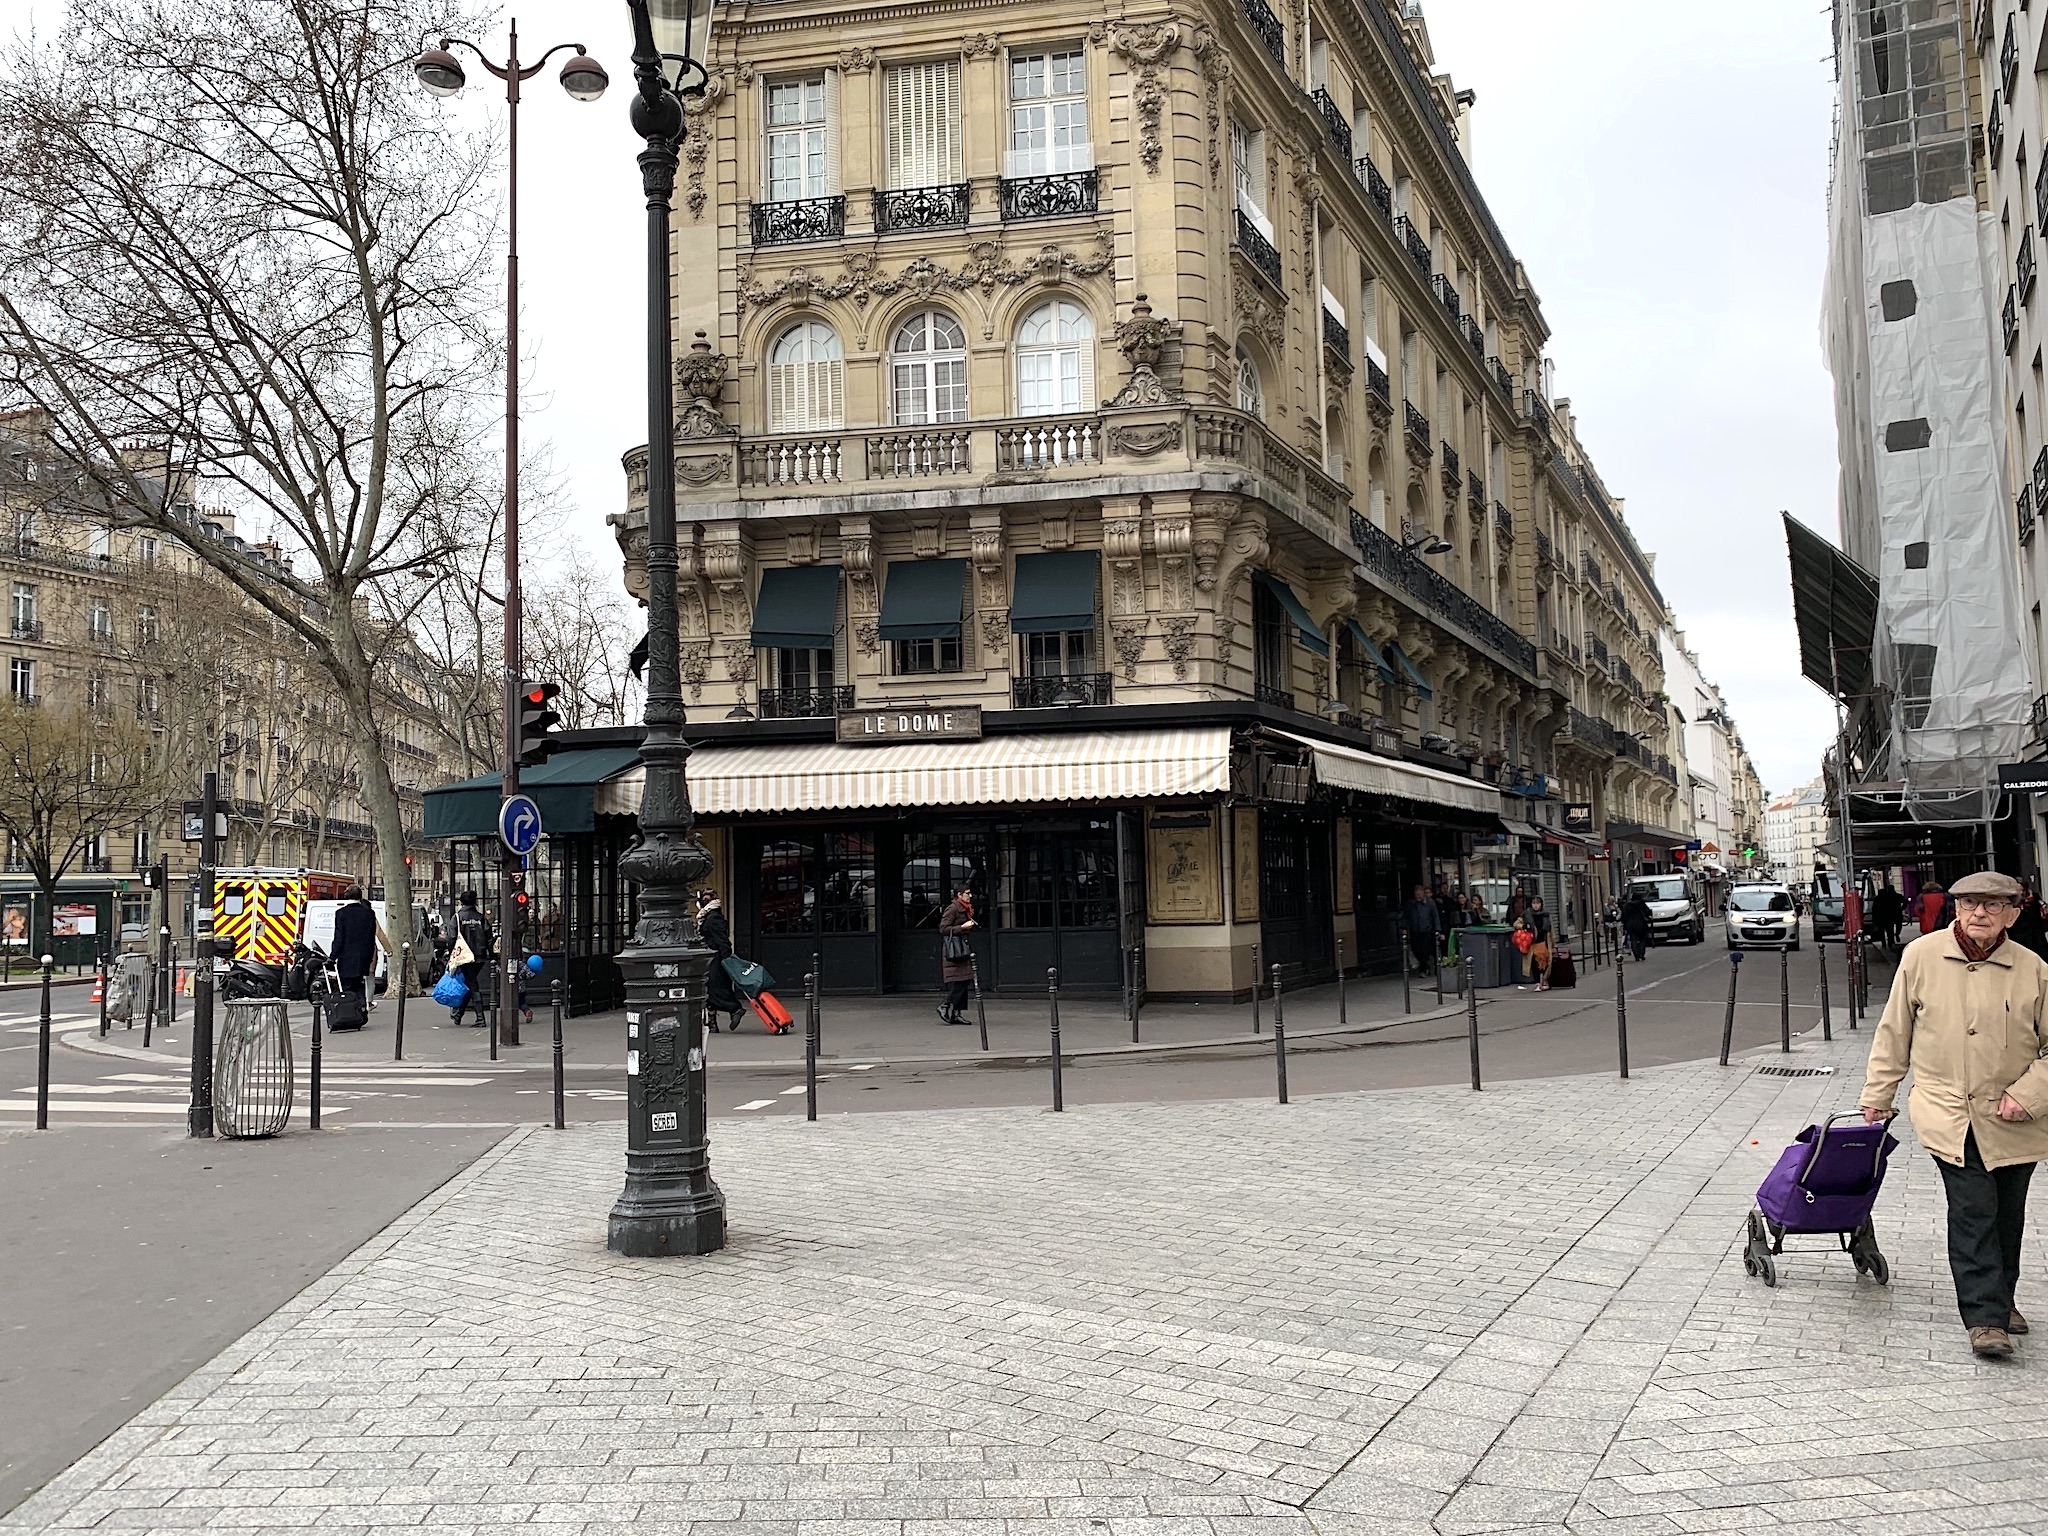 Paris under lockdown: A mostly empty street and closed café as solitary shoppers scamper to their destinations.